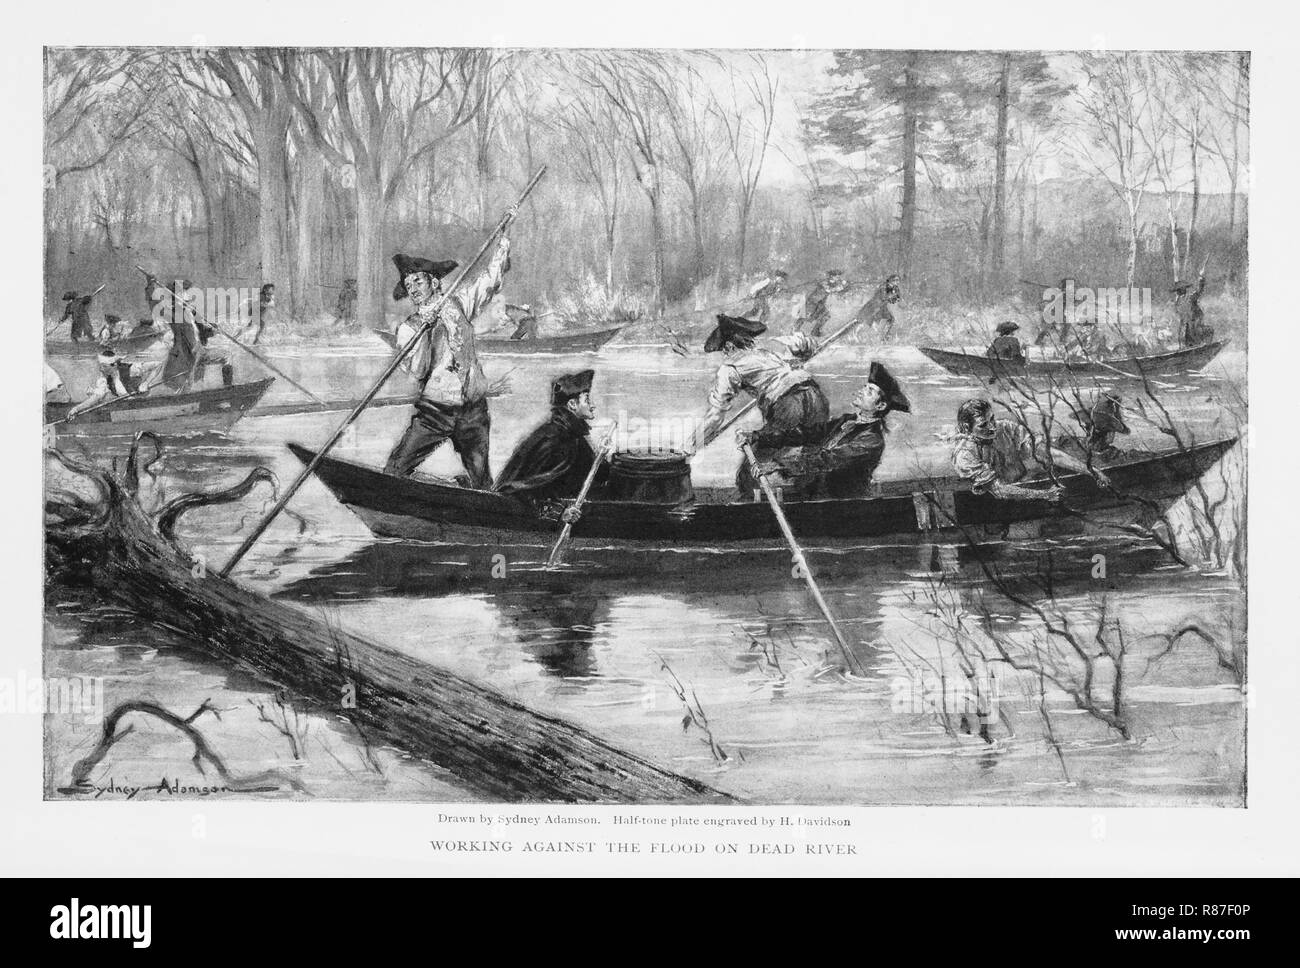 Troops, under Command of Benedict Arnold, at Skowhegan Falls, Maine en Rout to Invasion of Canada, 1775, 'Working Against the Flood on Dead River', The Century Illustrated Monthly Magazine drawn by Sydney Adamason, Engraving by H. Davidson, 1903 - Stock Image